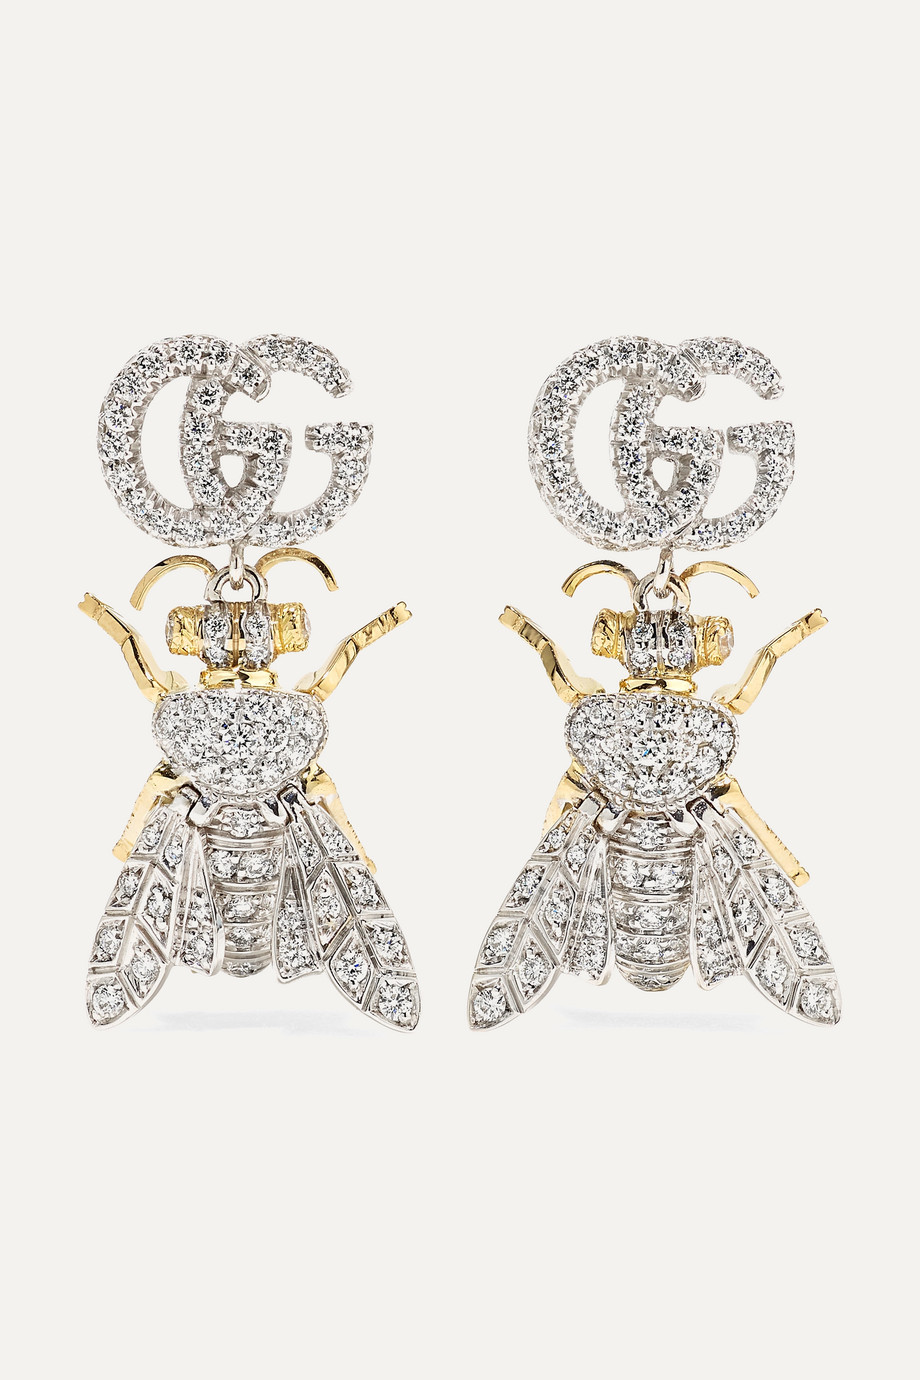 GUCCI Le Marché des Merveilles 18-karat yellow and white gold diamond earrings